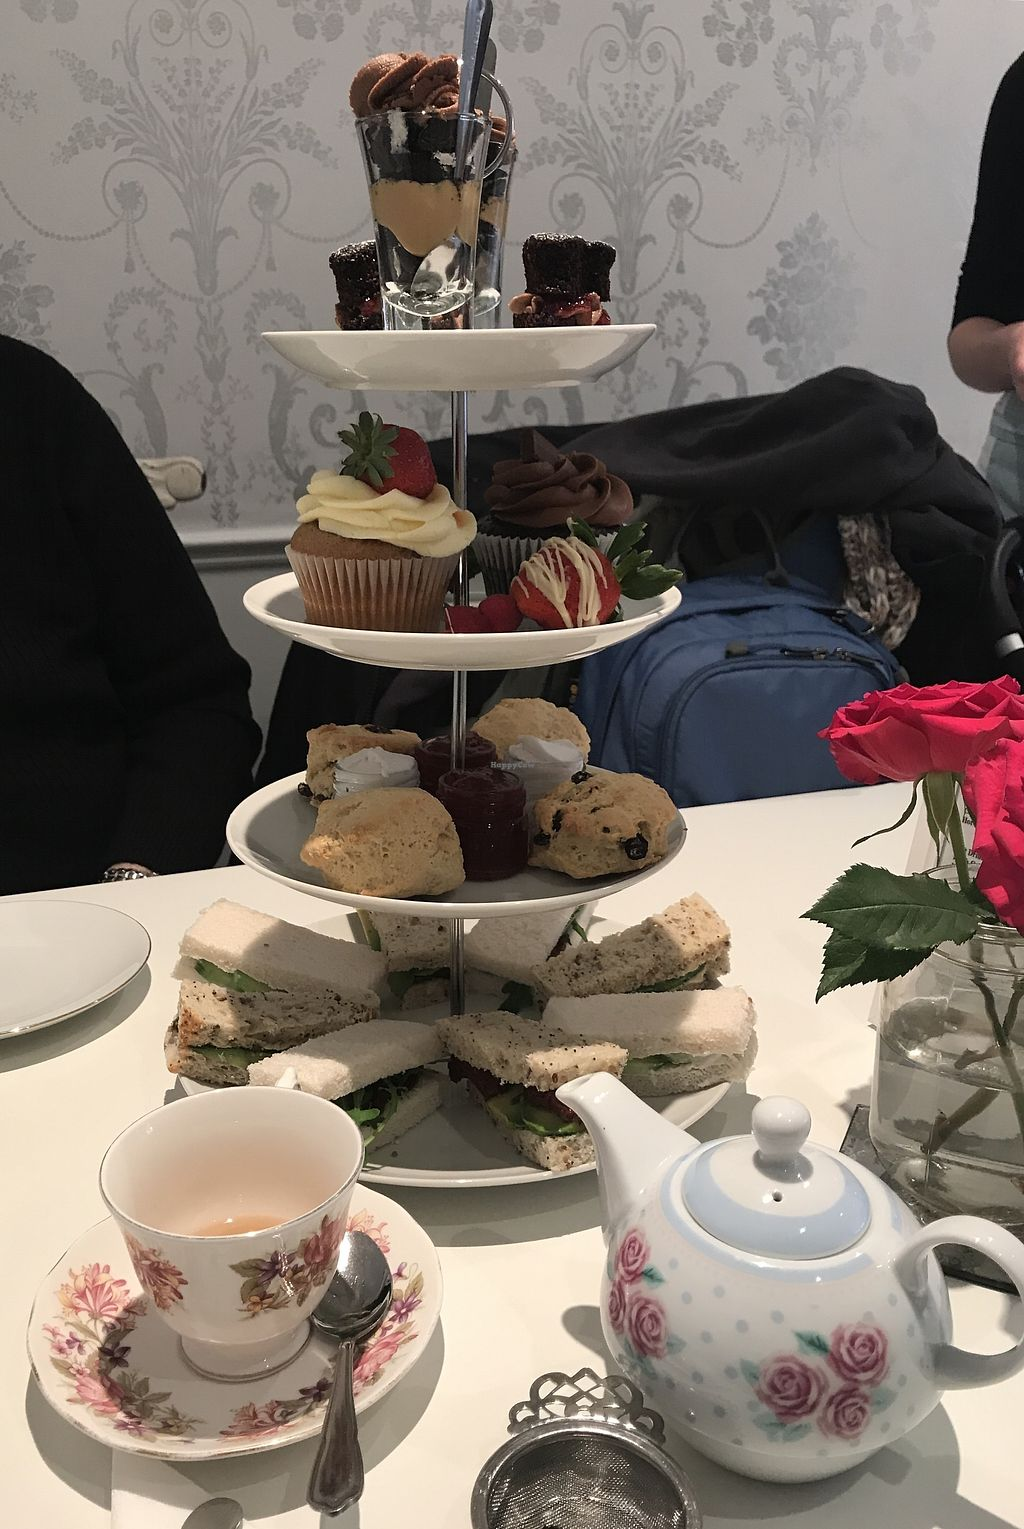 """Photo of Laura Kate  by <a href=""""/members/profile/ELyzab"""">ELyzab</a> <br/>Vegan afternoon tea  <br/> January 12, 2018  - <a href='/contact/abuse/image/109320/345886'>Report</a>"""